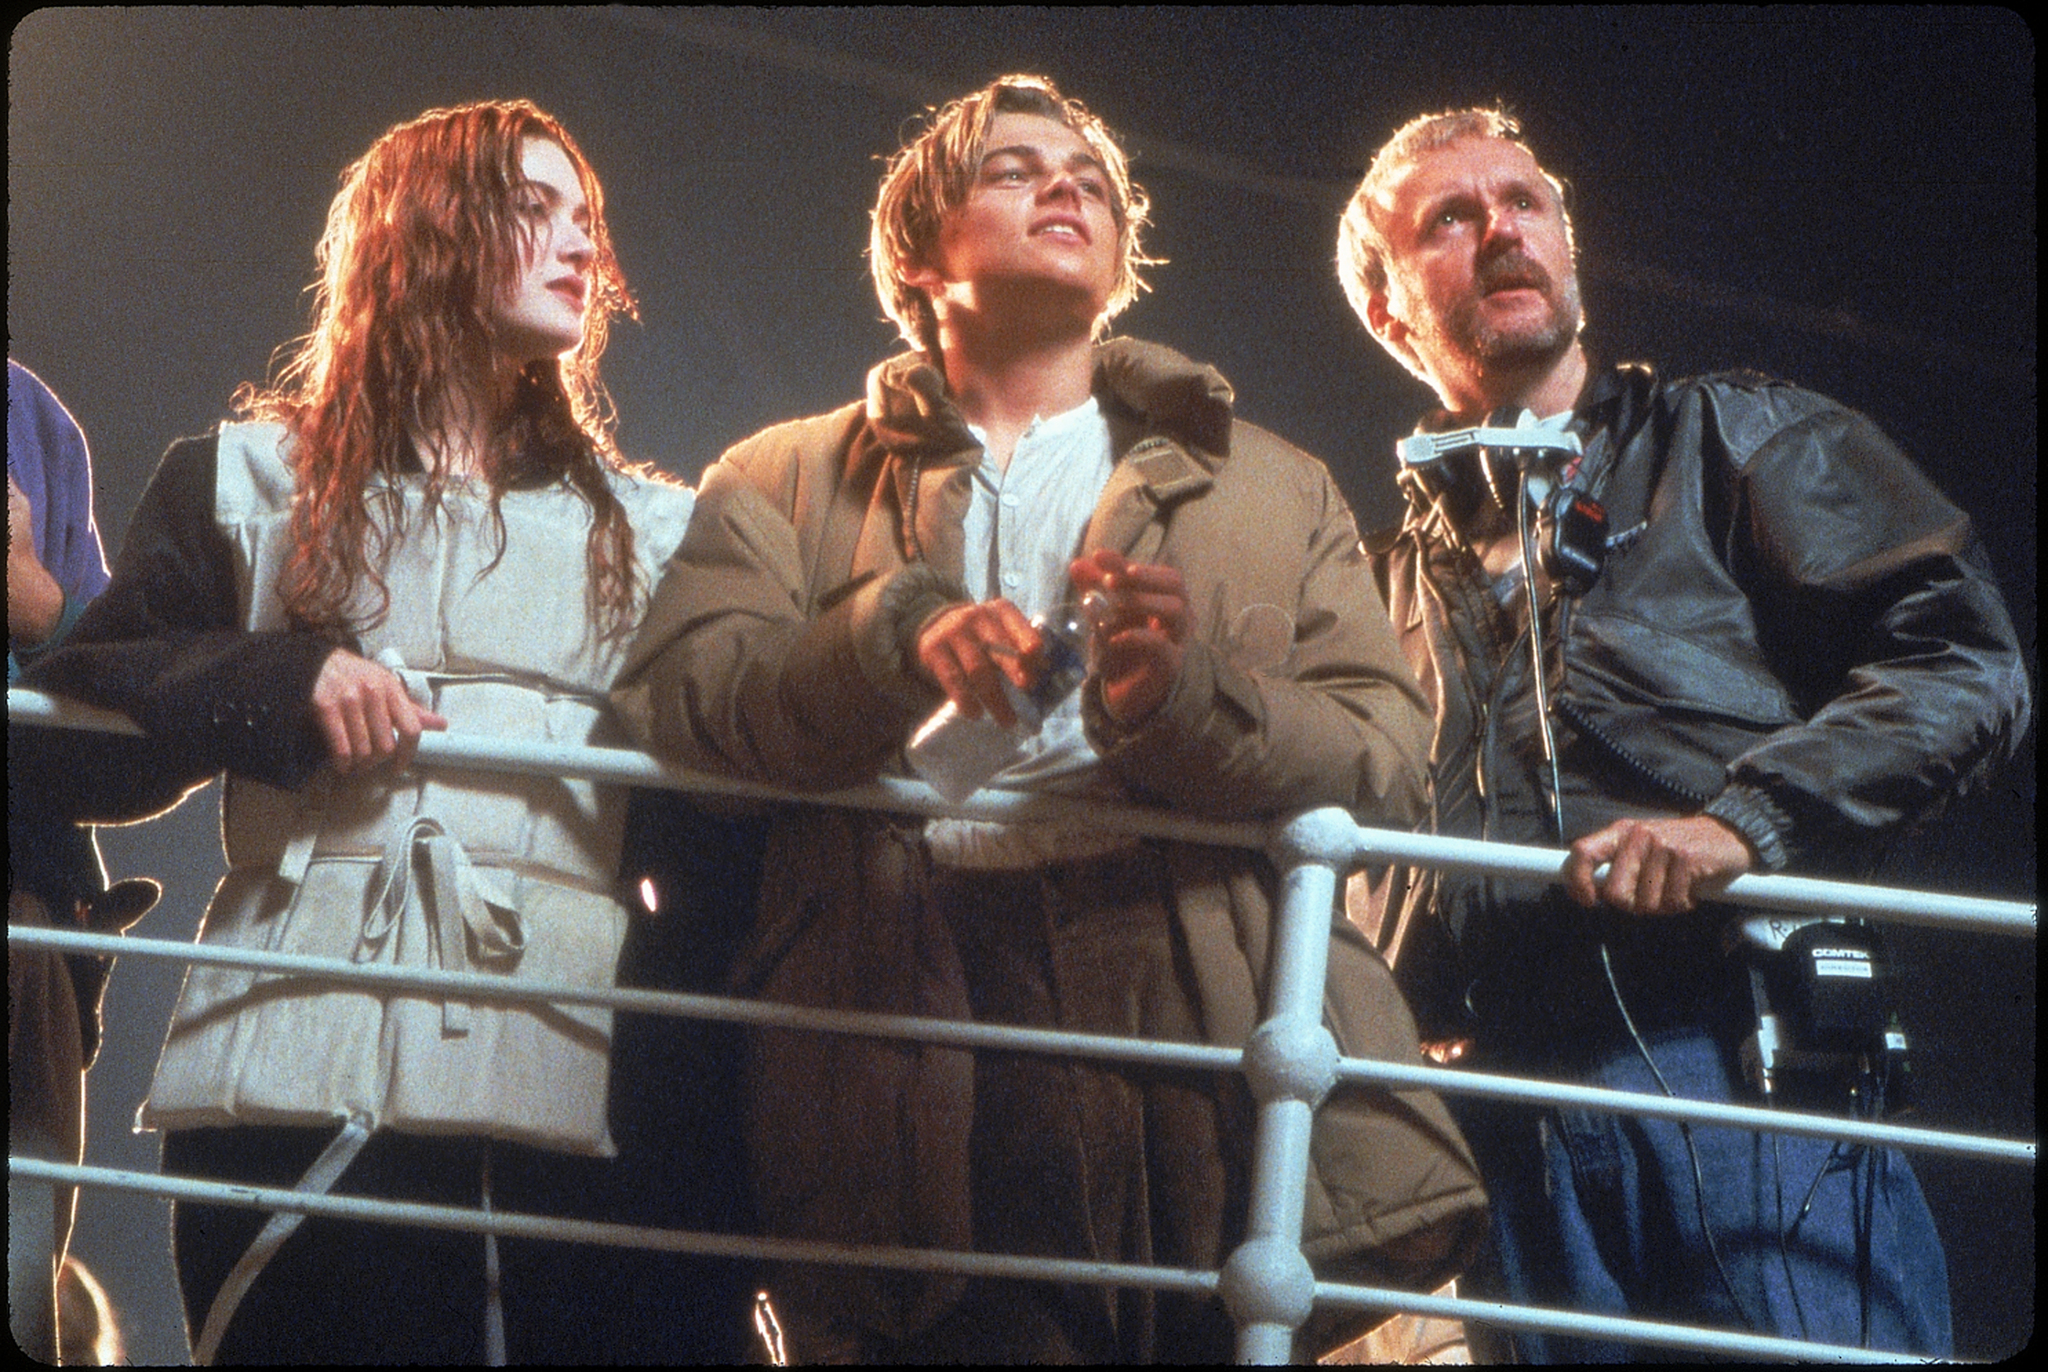 Kate Winslet, Leonardo DiCaprio and James Cameron on set while filming 'Titanic'.